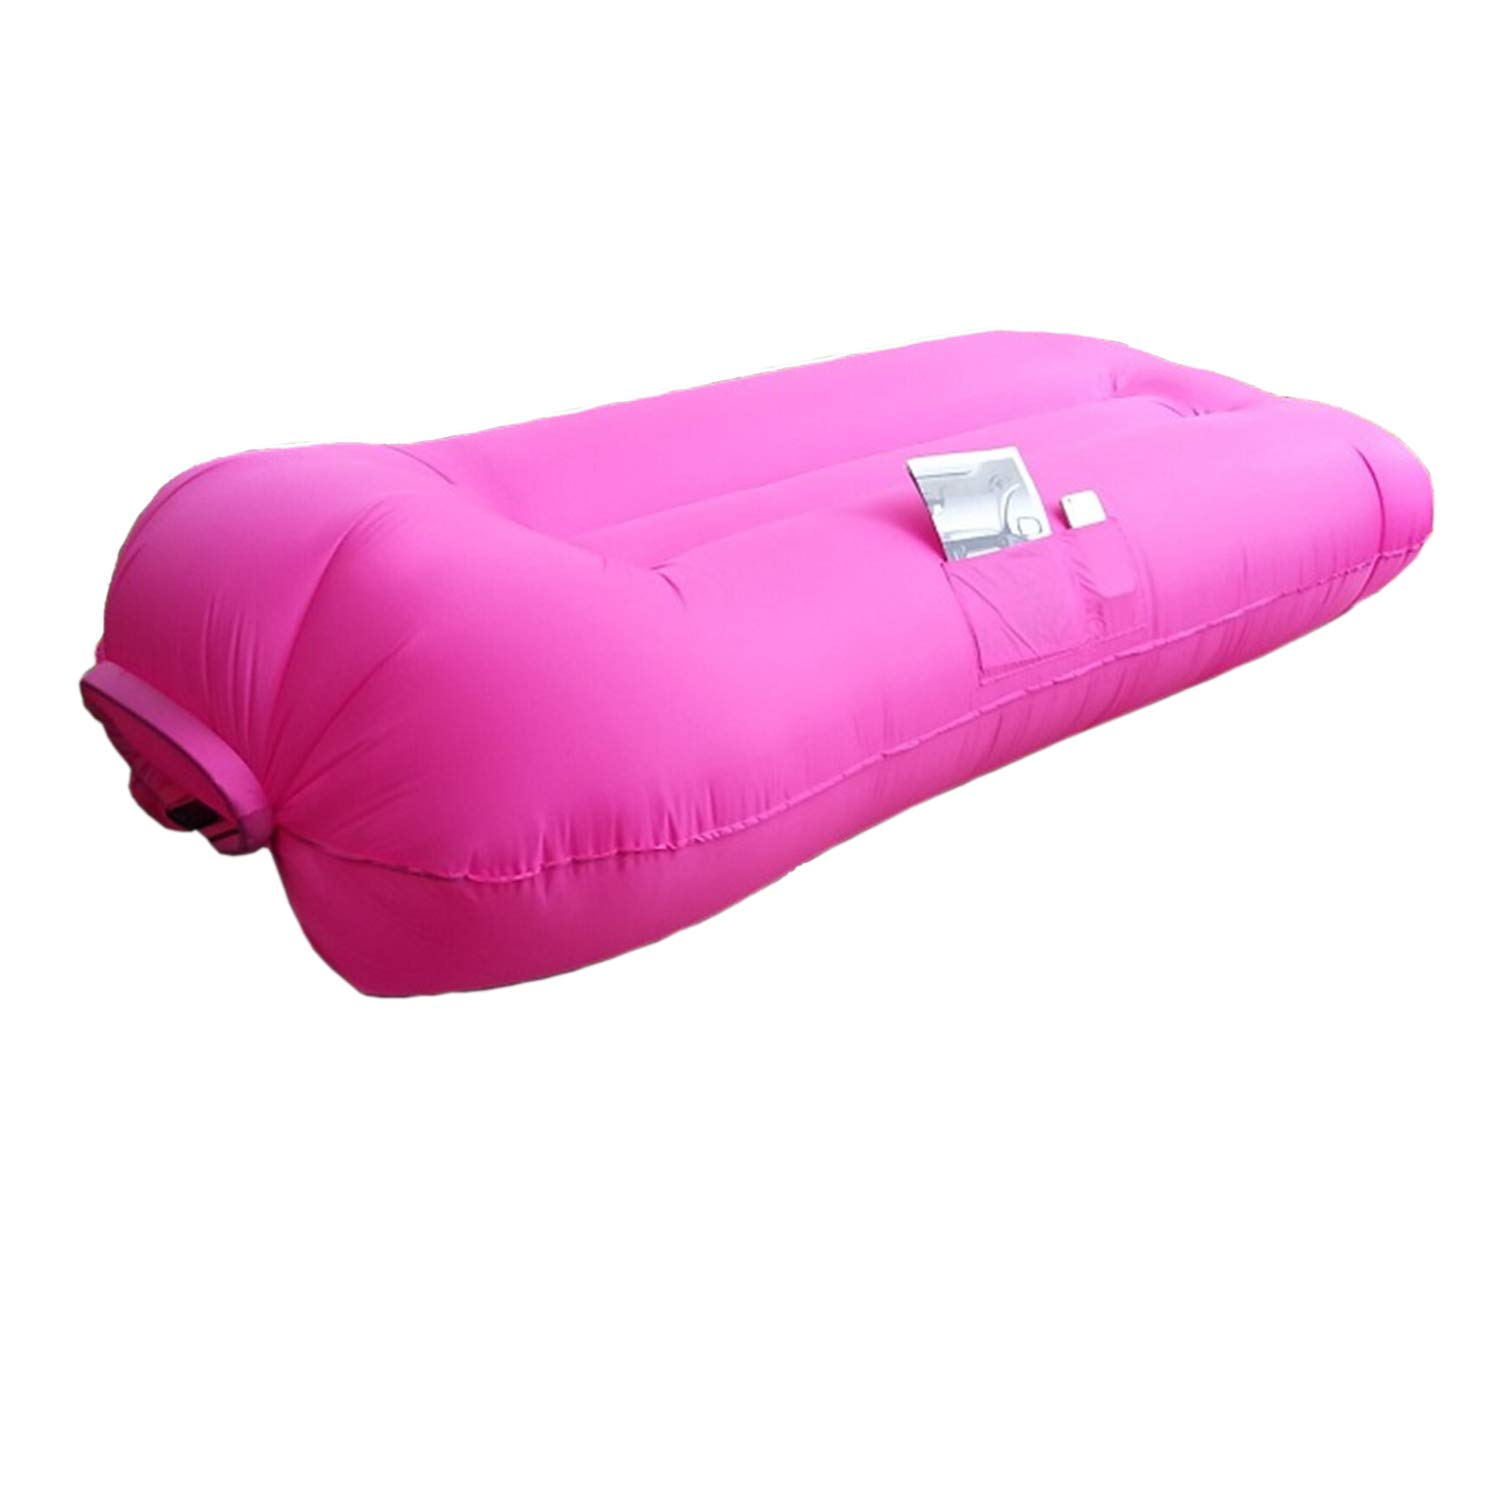 SUNSHINEMALL Inflatable Lounger Air Chair Couch Hammock, Lazy Hangout Beach Couch Camping Sofa Couch Sport Outdoor Pool Toy Float (Pink) by SUNSHINEMALL